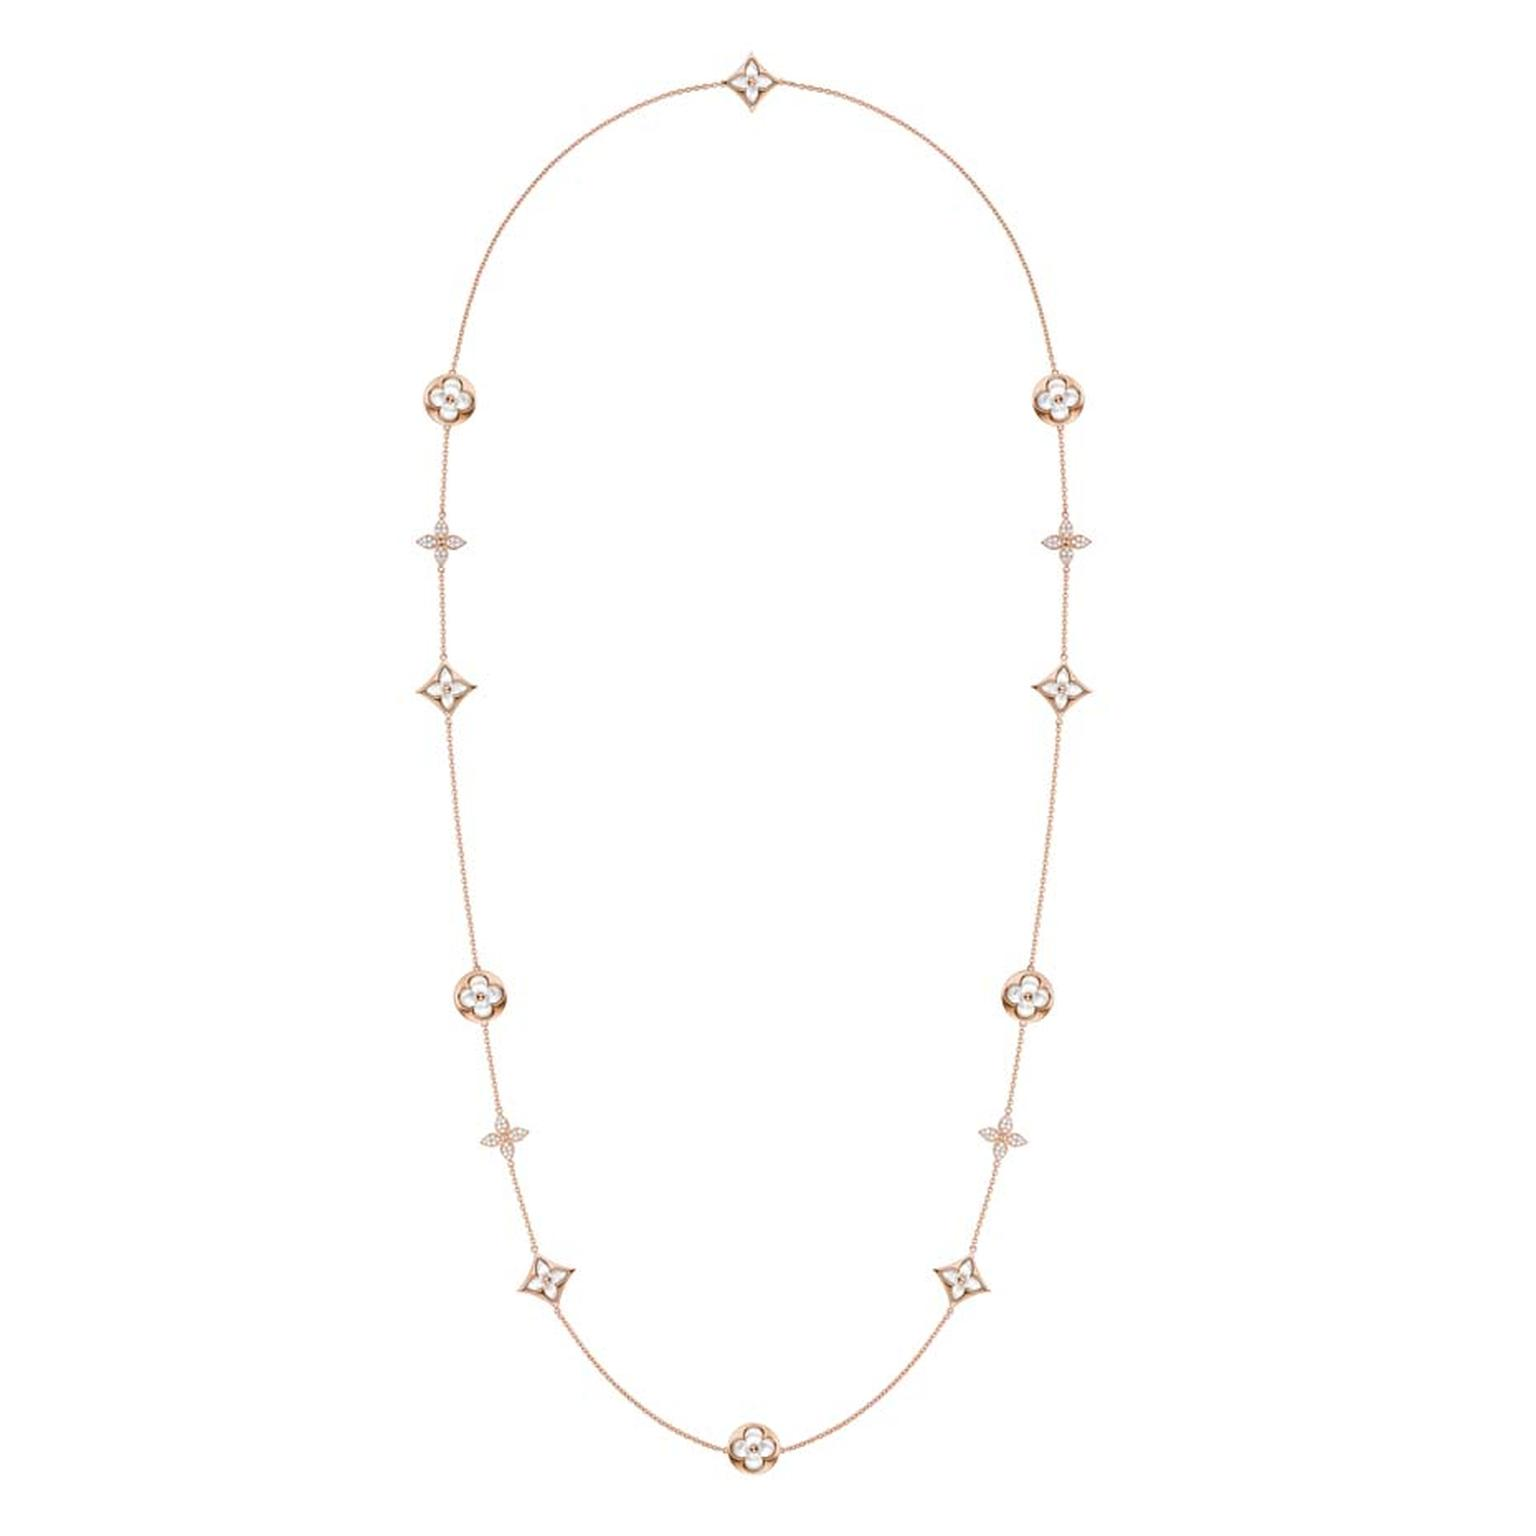 This it the first time Louis Vuitton jewellery has used mother-of-pearl in its Monogram collection, but since Vuitton prides itself on doing things its own way, the mother-of-pearl is facetted into a gently rounded cabochon shape. This adds extra depth an